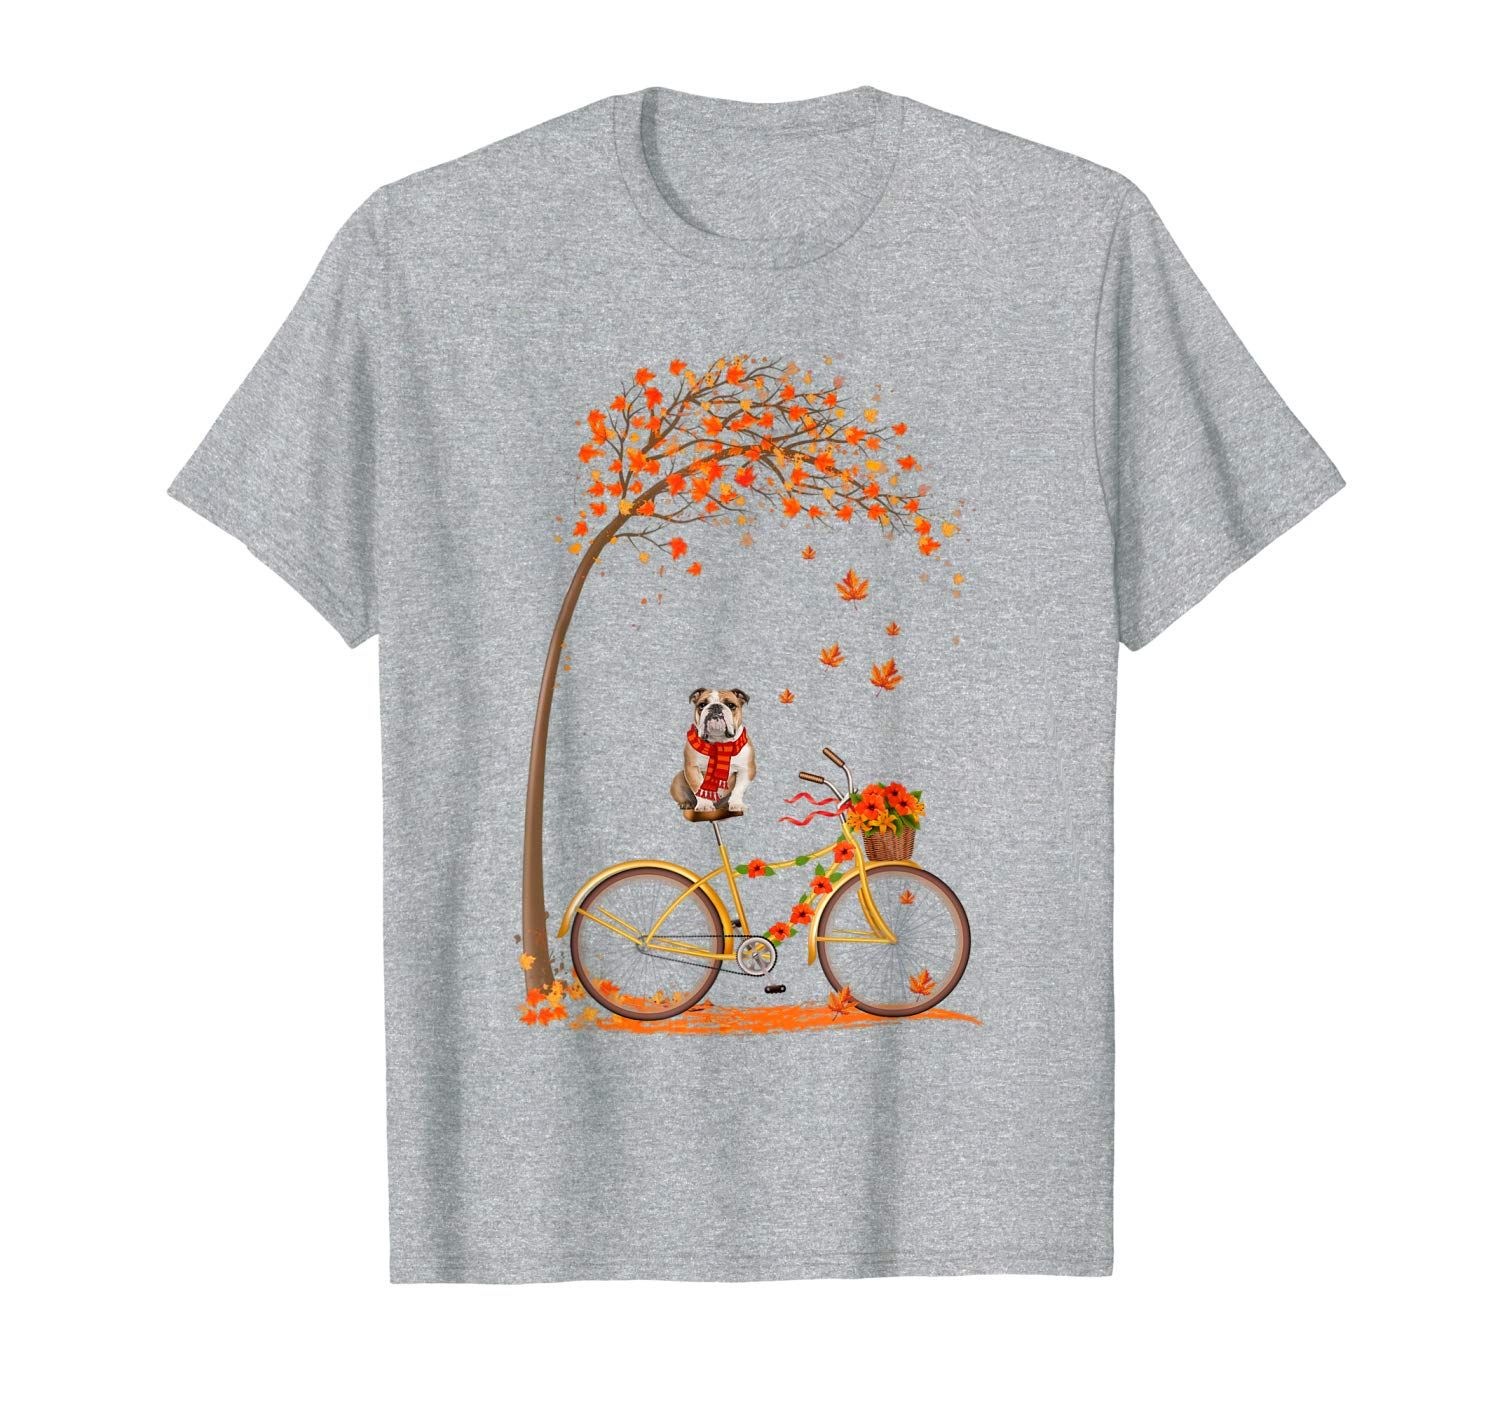 Maple Bulldog Bike Leaf Fall Hello Autumn Funny T-Shirt #helloautumn